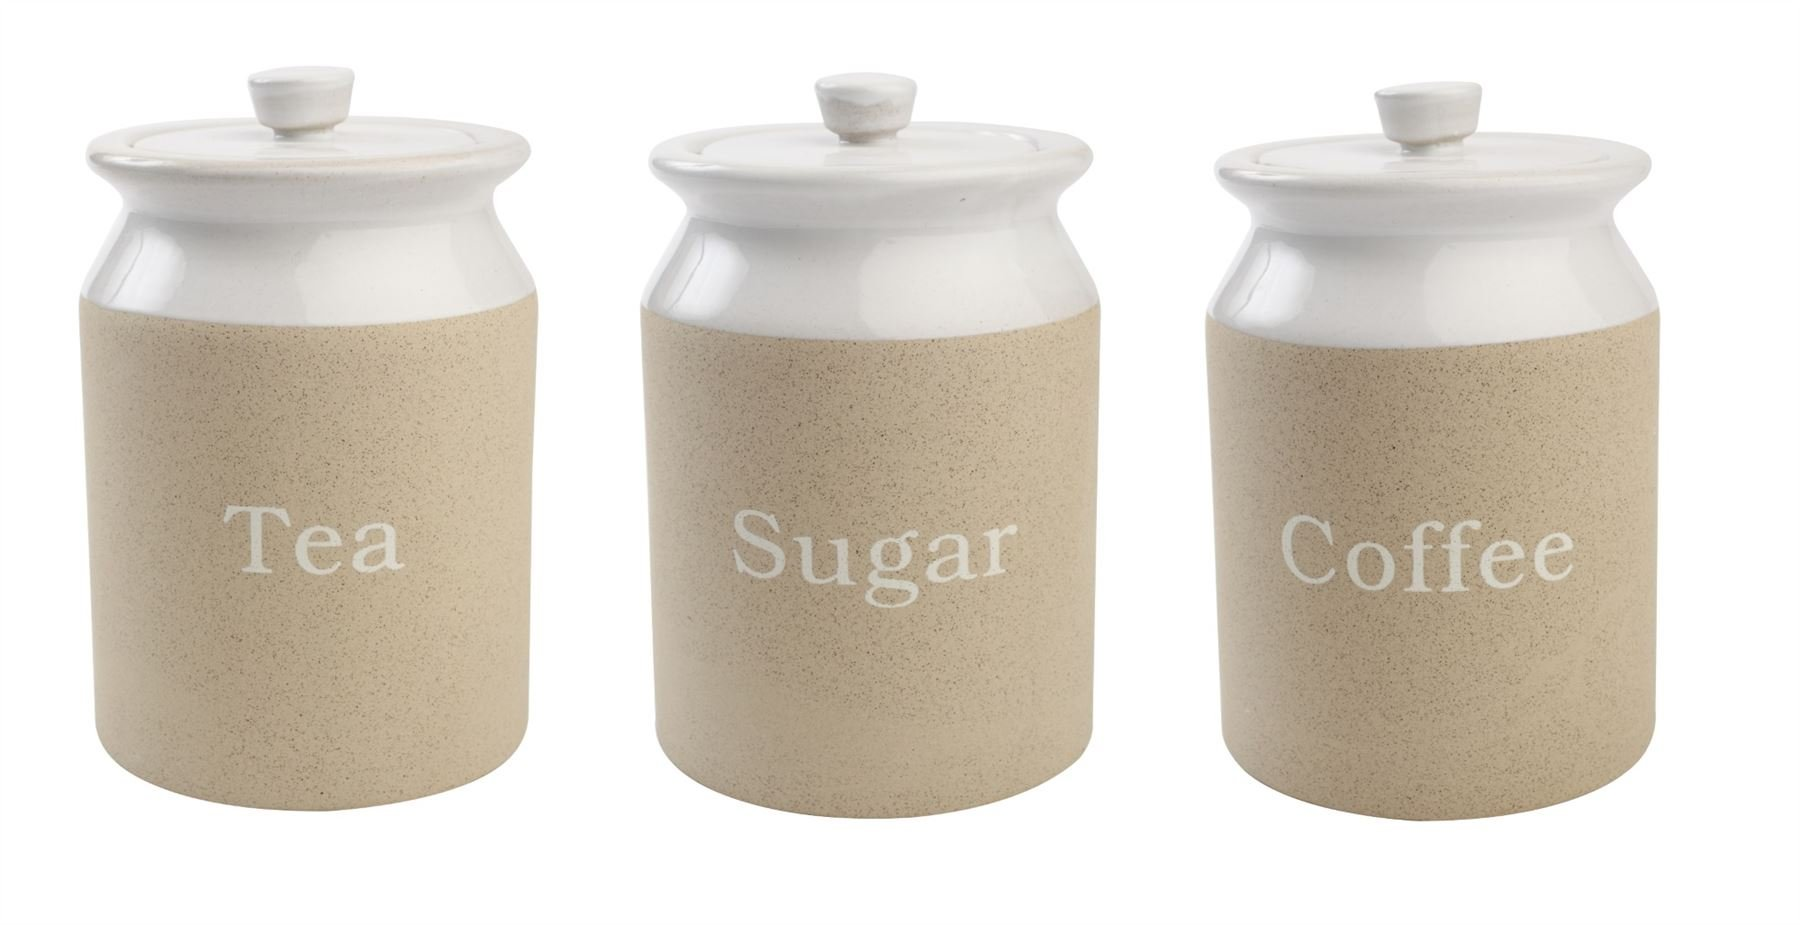 T&G Woodware Stone Design Stoneware Tea Sugar Coffee Storage Jar Set of 3 by T&G Woodware